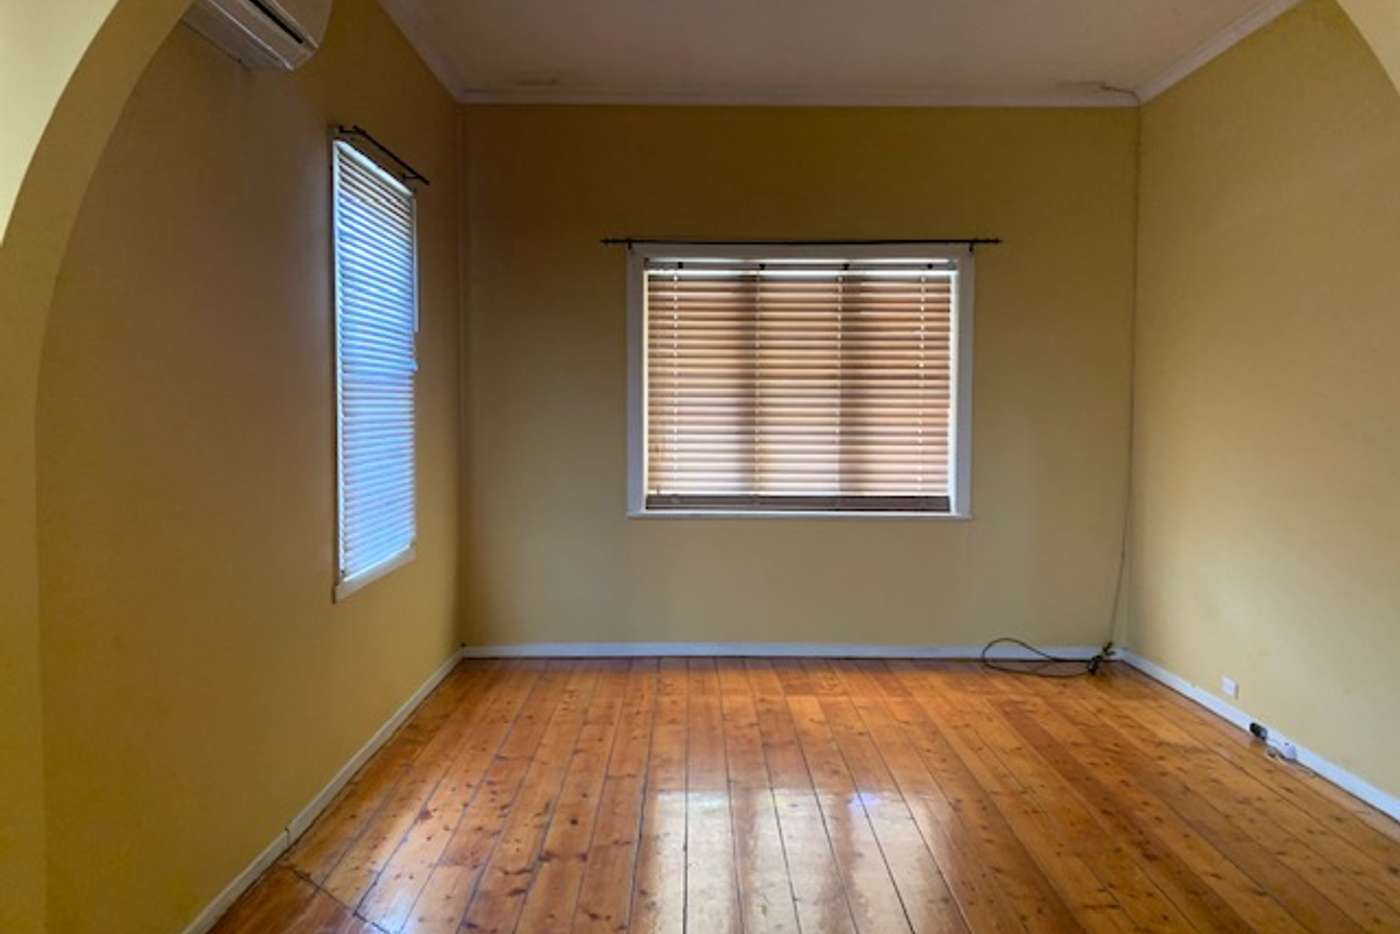 Sixth view of Homely house listing, 51 Devon Avenue, Coburg VIC 3058